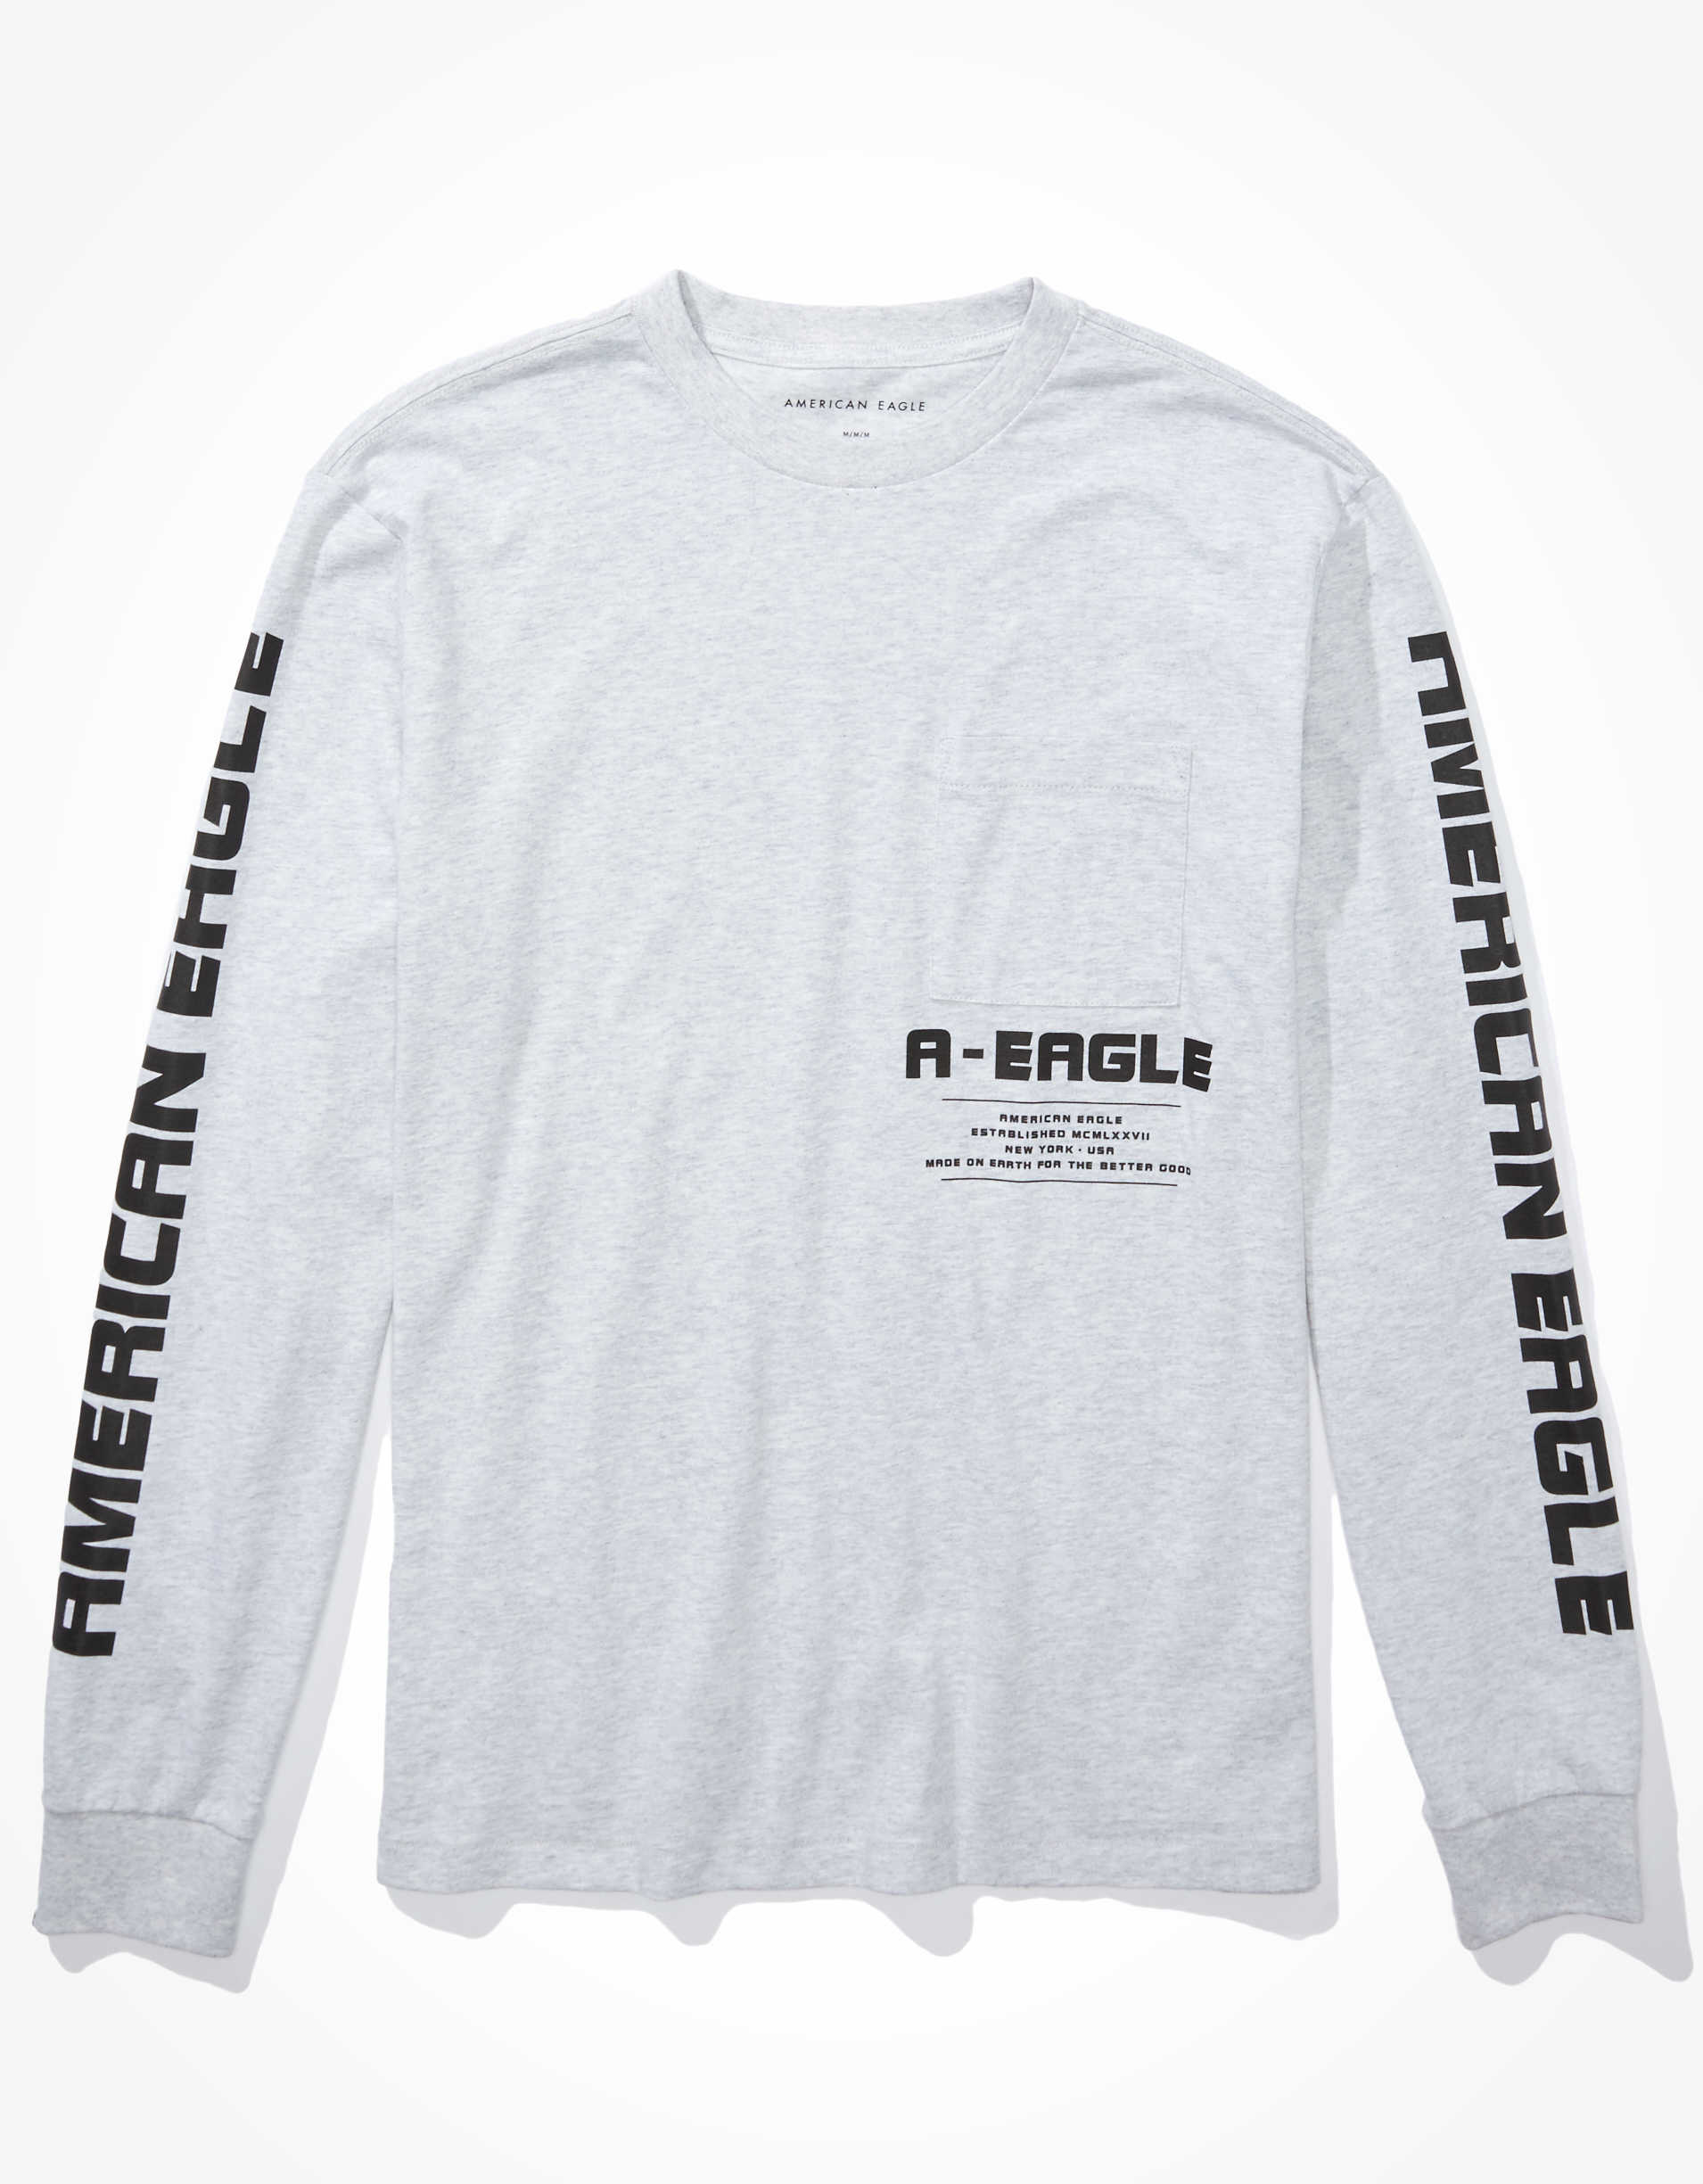 AE Super Soft Long-Sleeve Graphic T-Shirt